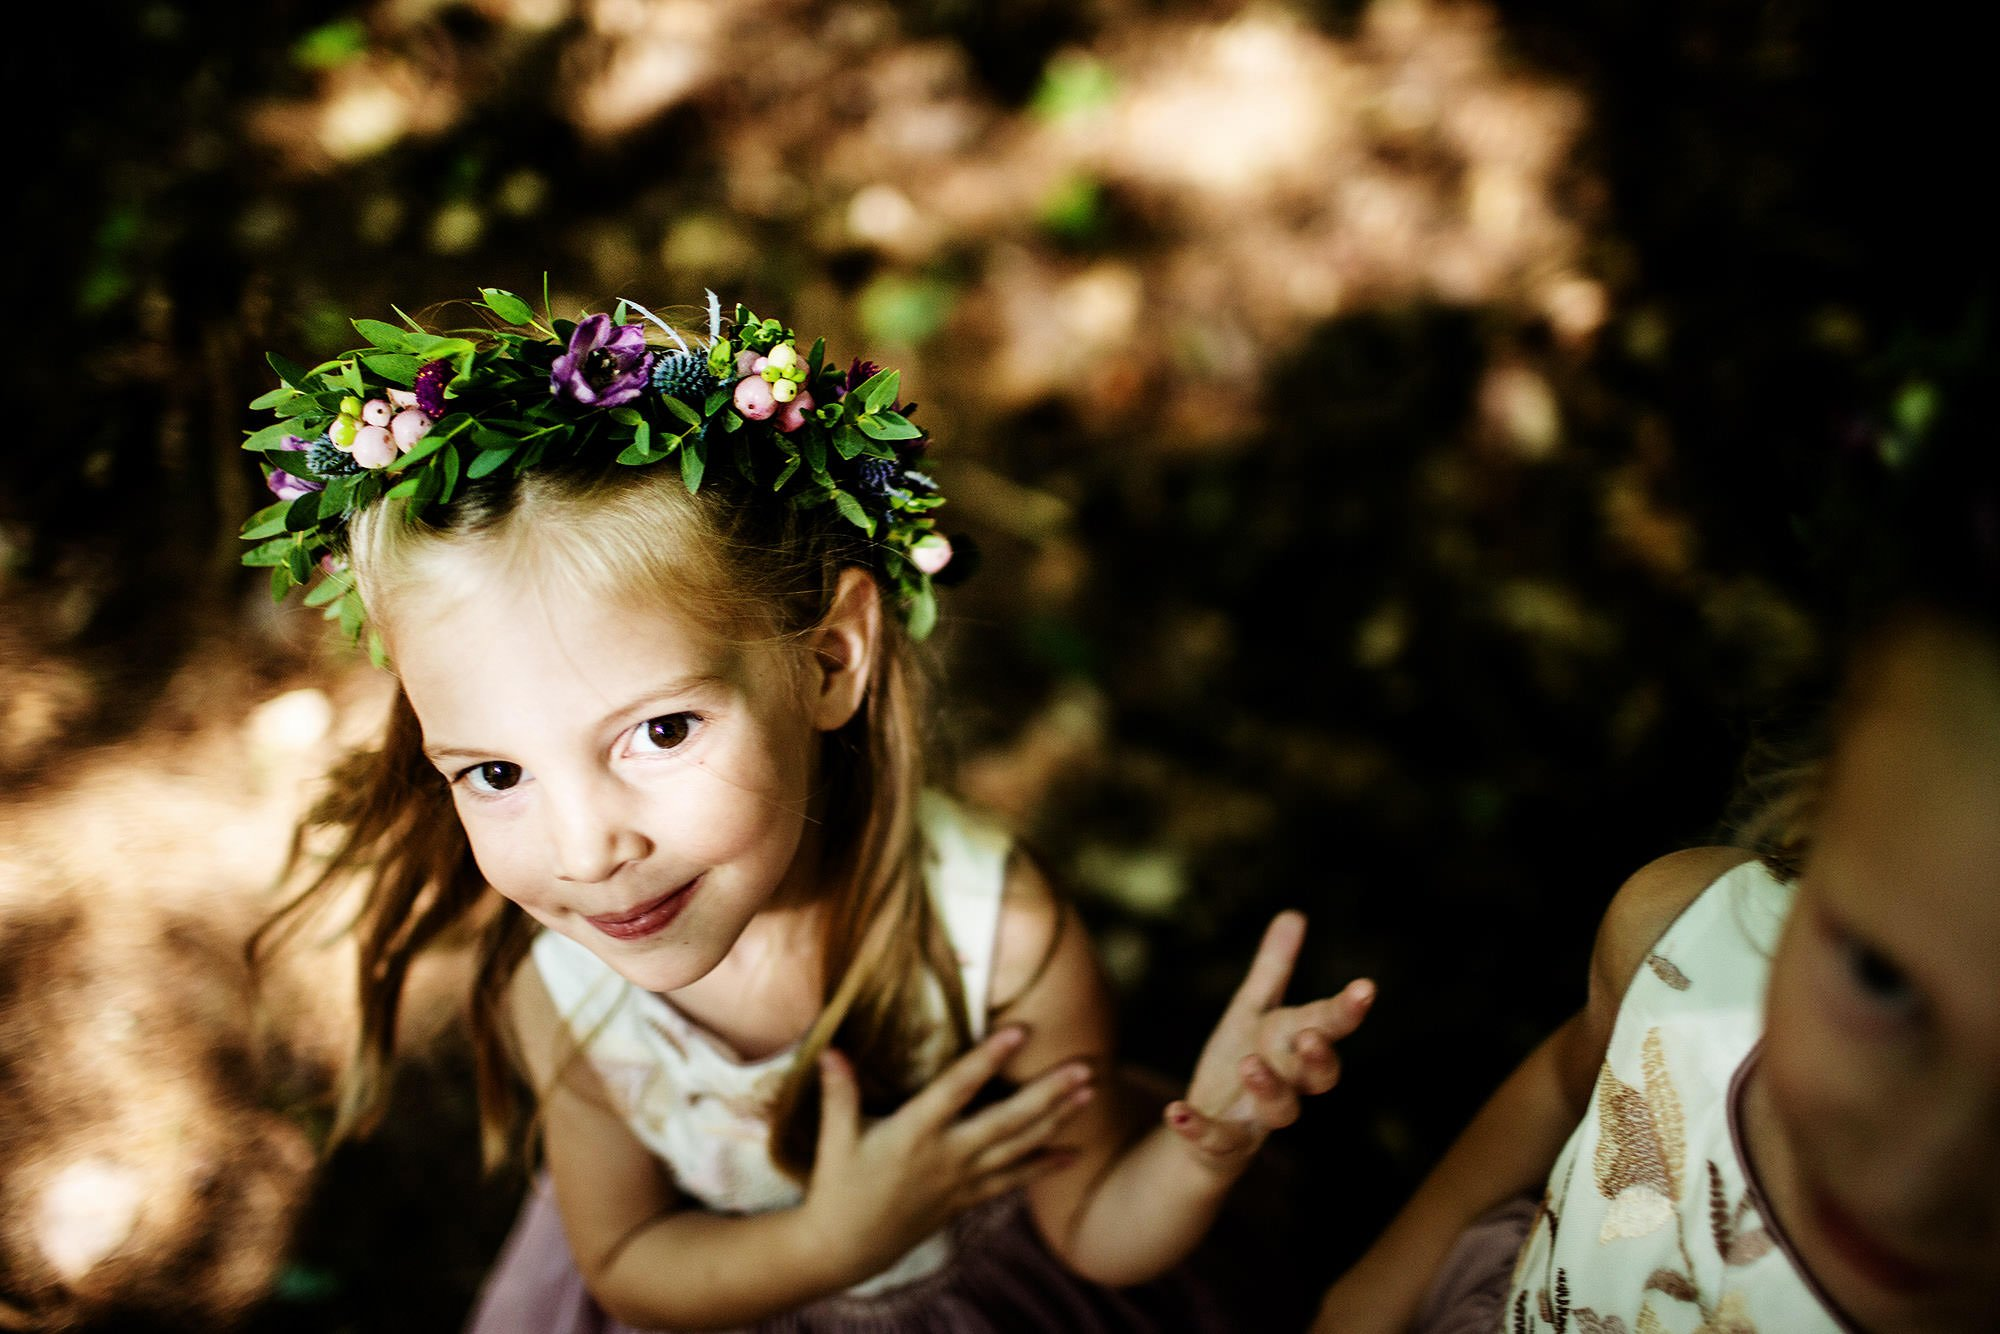 A flower girl shows off her flowers at Hulbert Outdoor Center prior to the wedding ceremony.